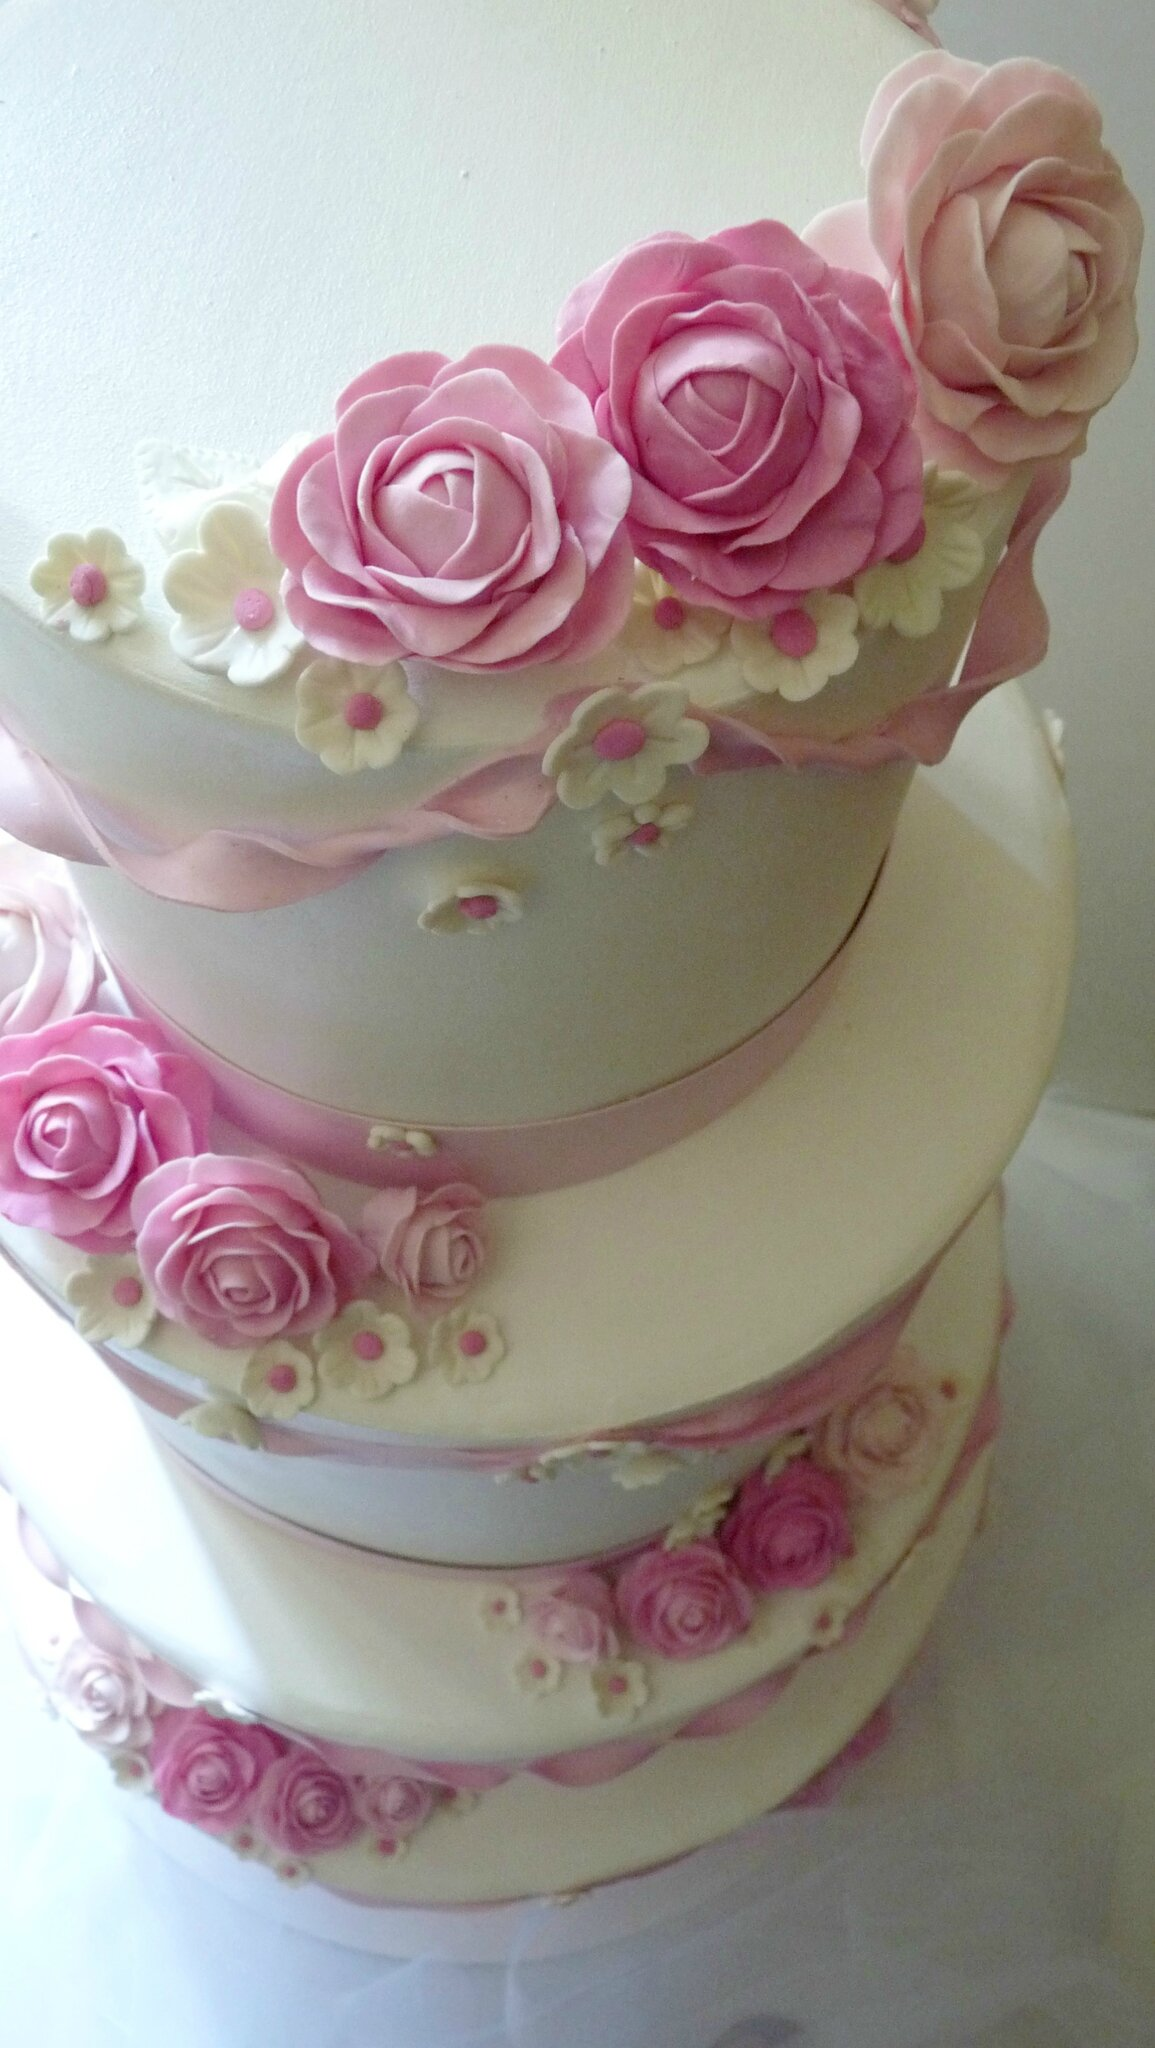 Wedding cake, détails, roses